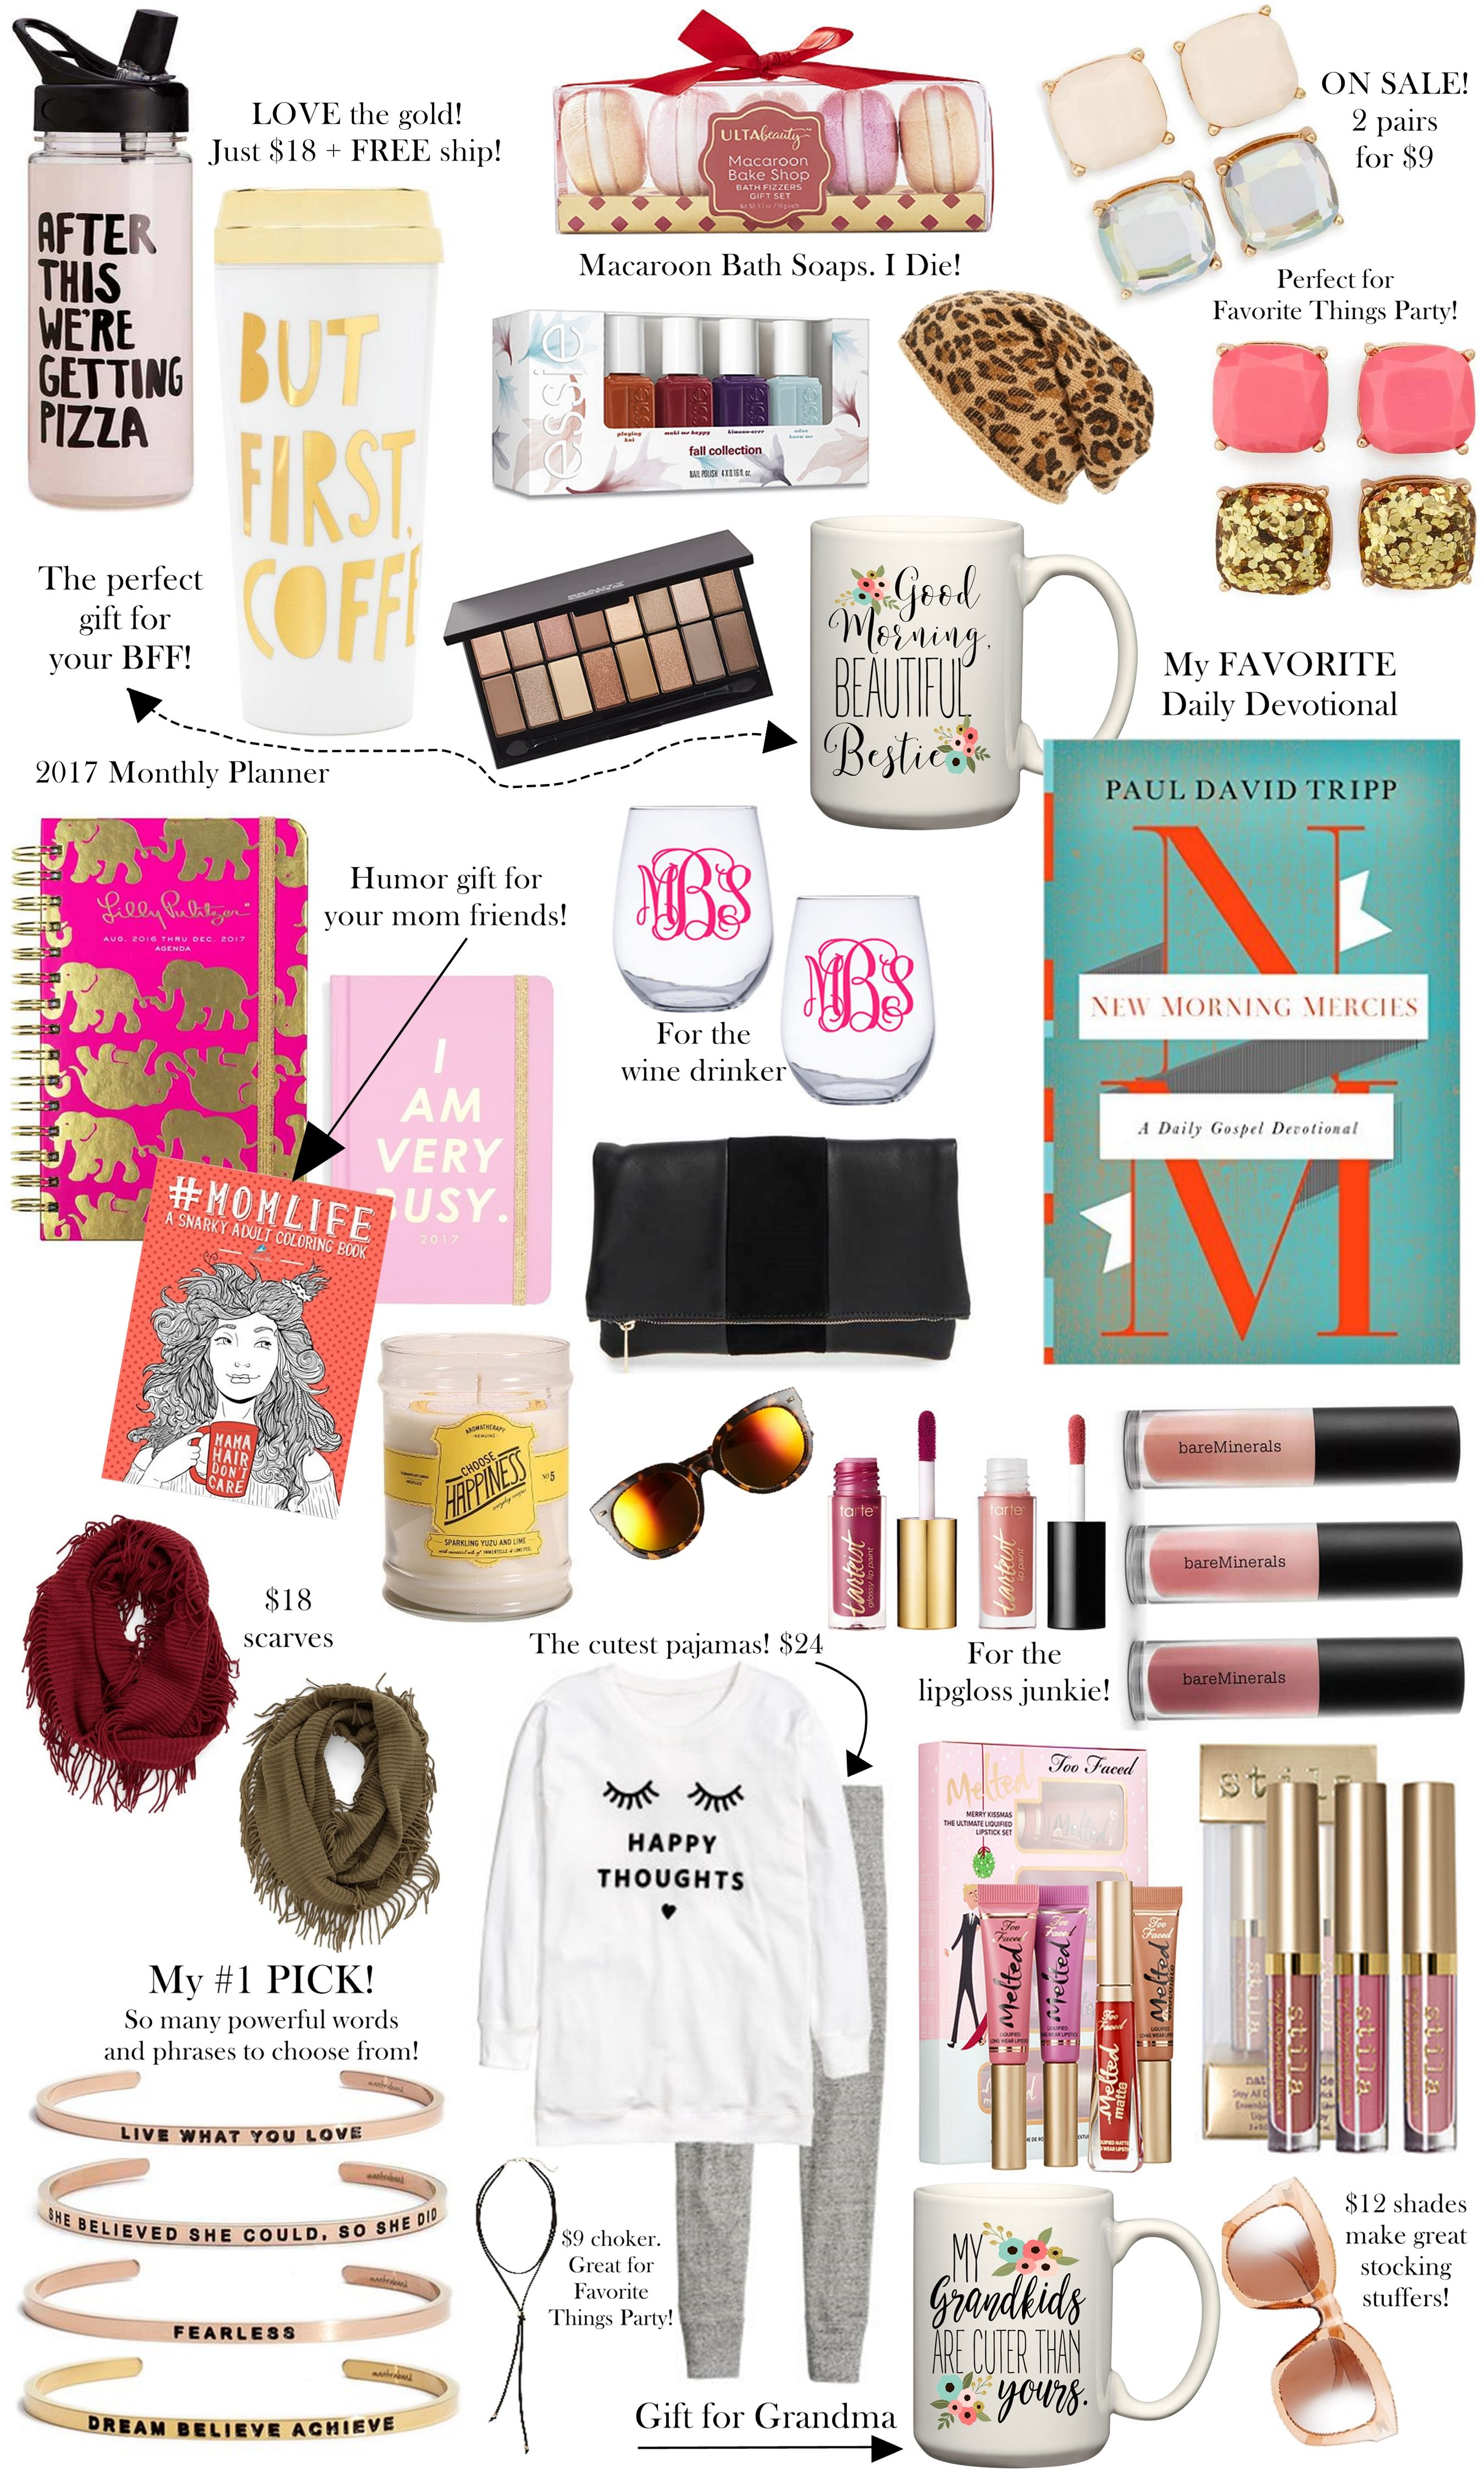 Christmas Gifts 25 Under 25 The Sister Studio Favorite Things Party Gift Ideas Favorite Things Gift Favorite Things Party